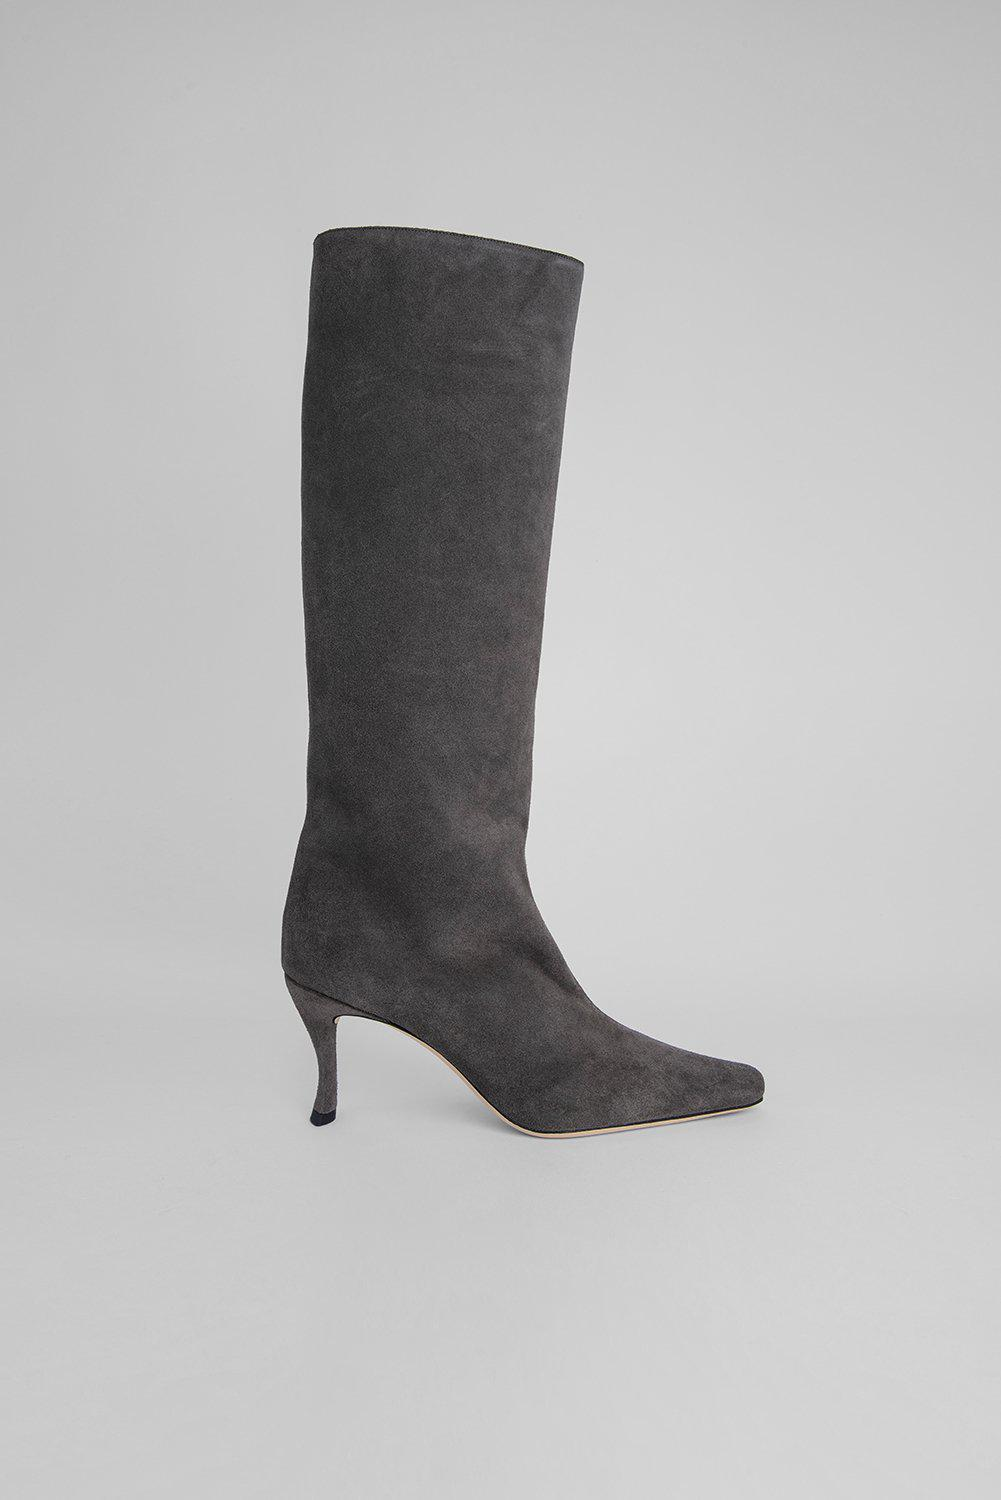 Stevie 42 Anthracite Suede Leather